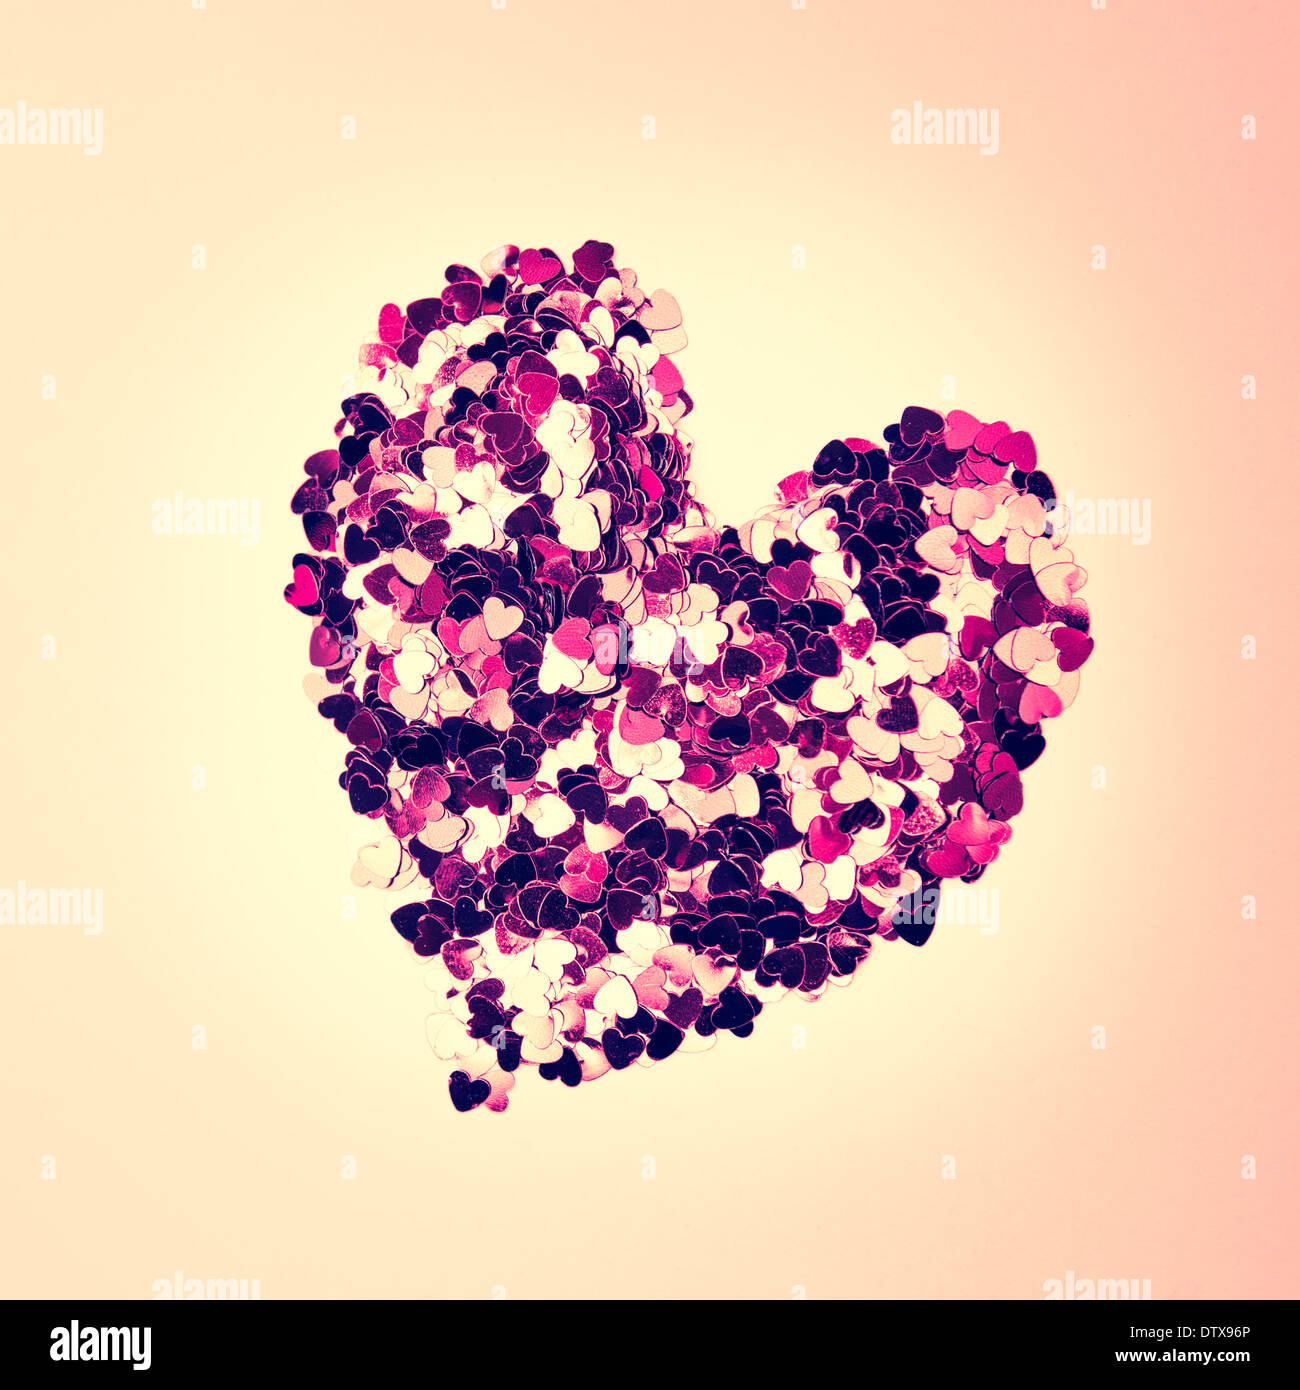 Pink confetti in heart shape - Stock Image